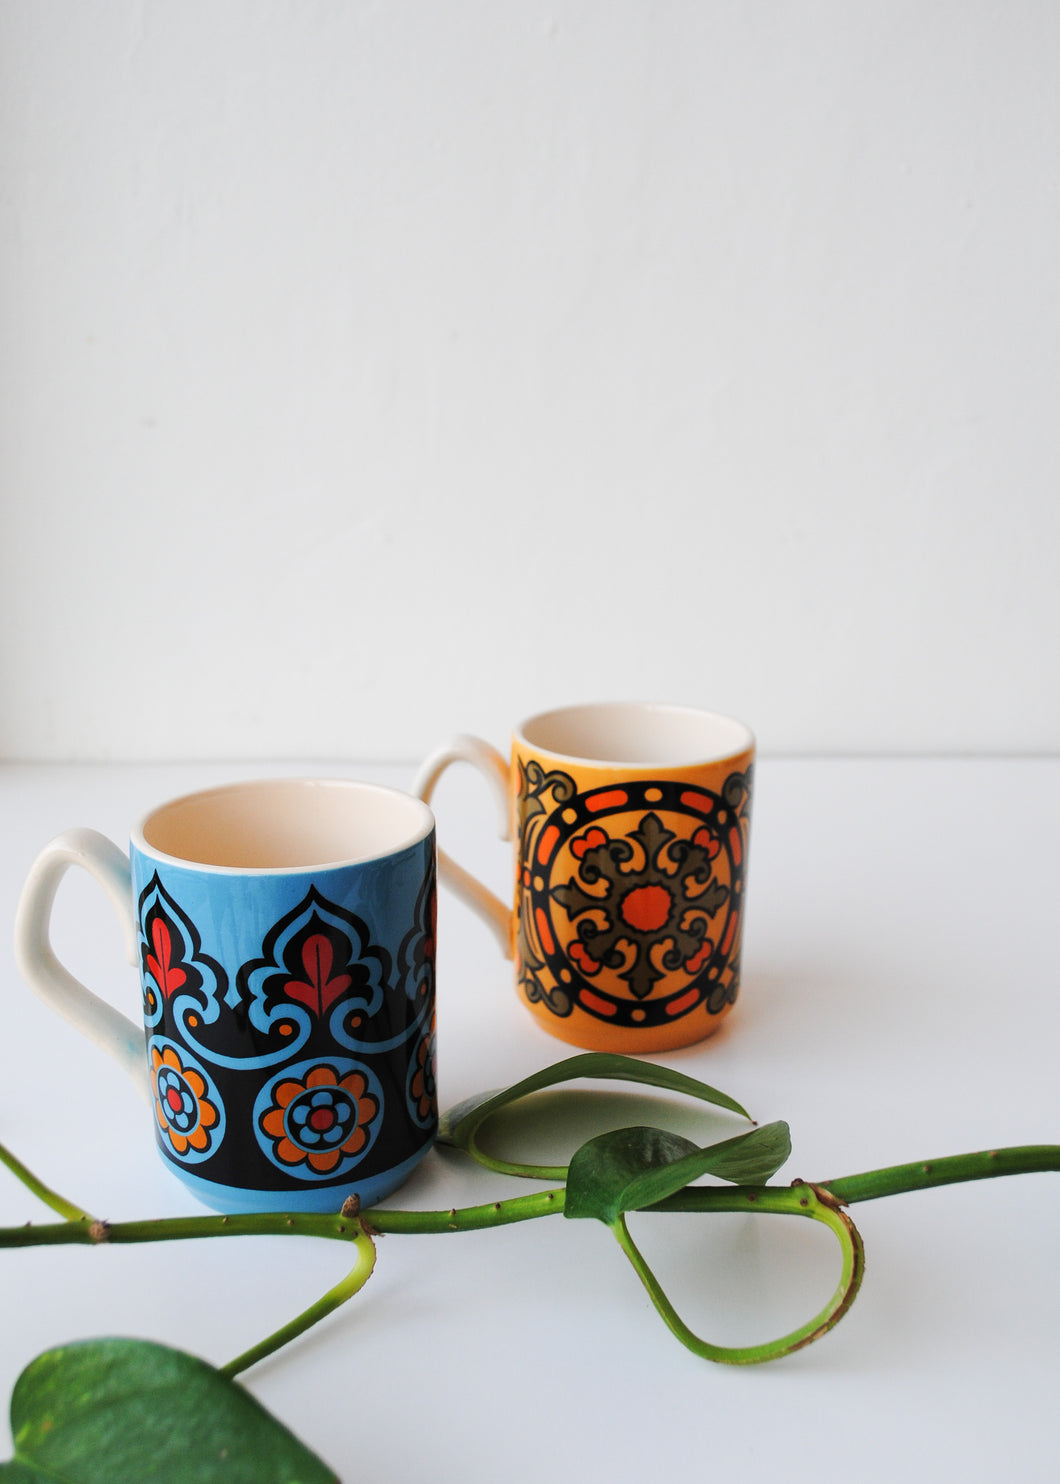 Vintage Art Nouveau Mugs (Set of 2)